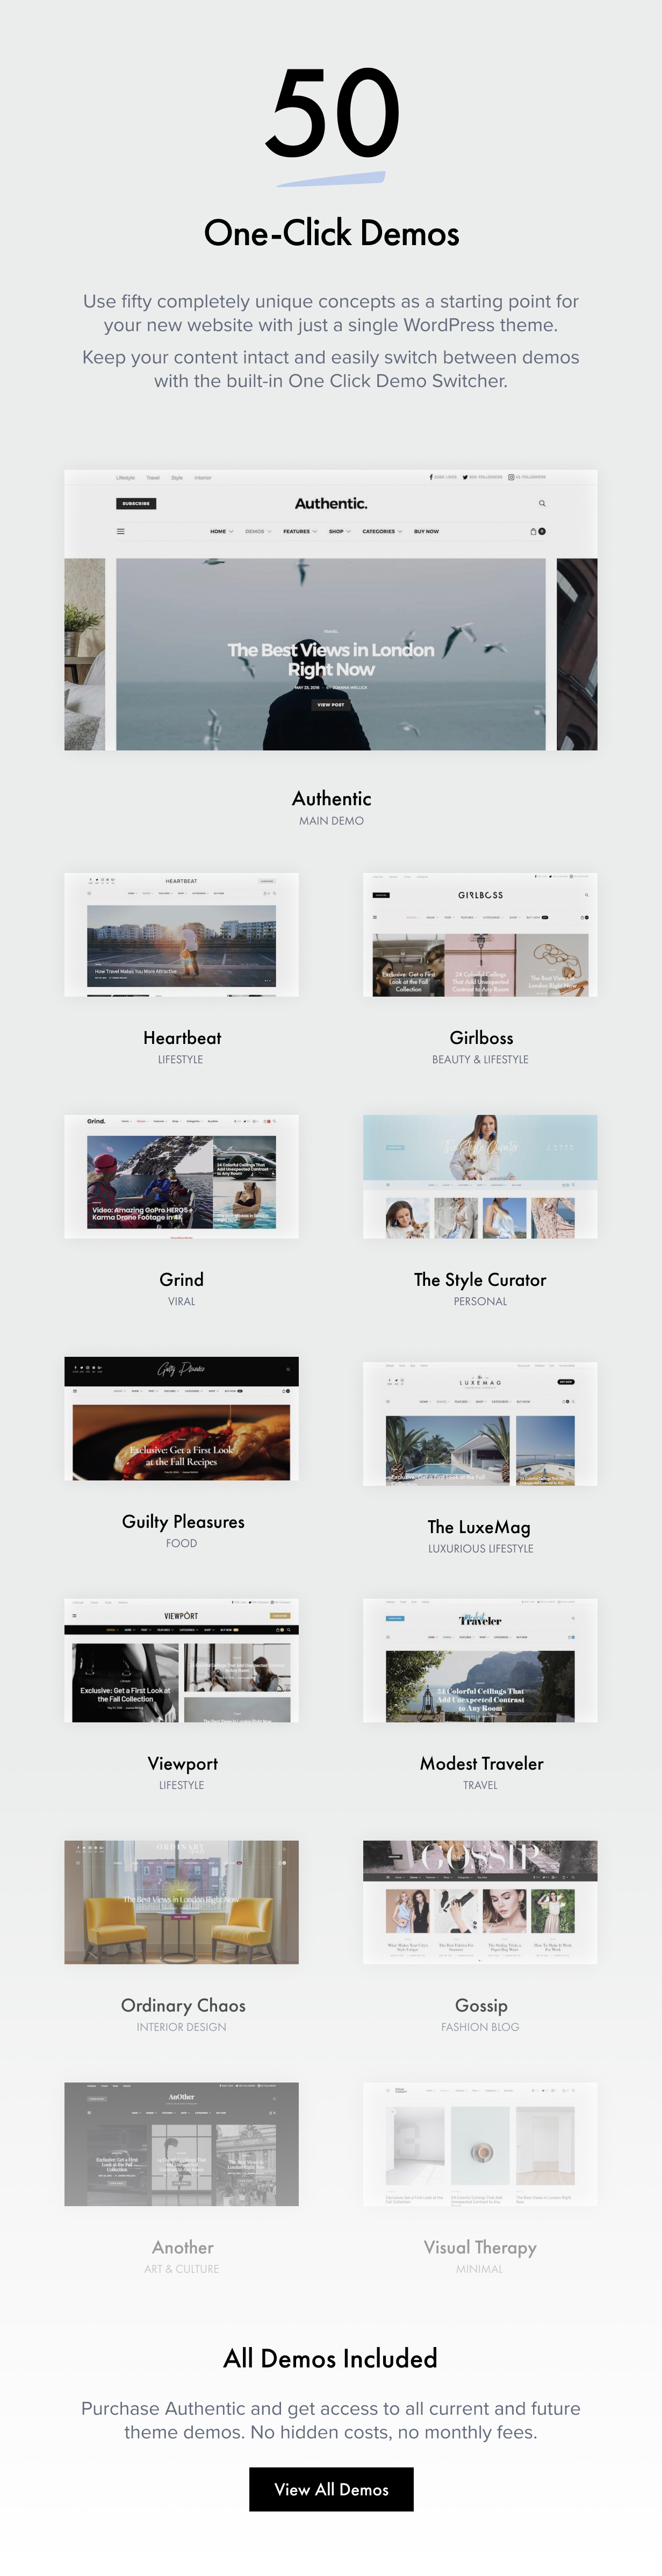 demos - Authentic - Lifestyle Blog & Magazine WordPress Theme